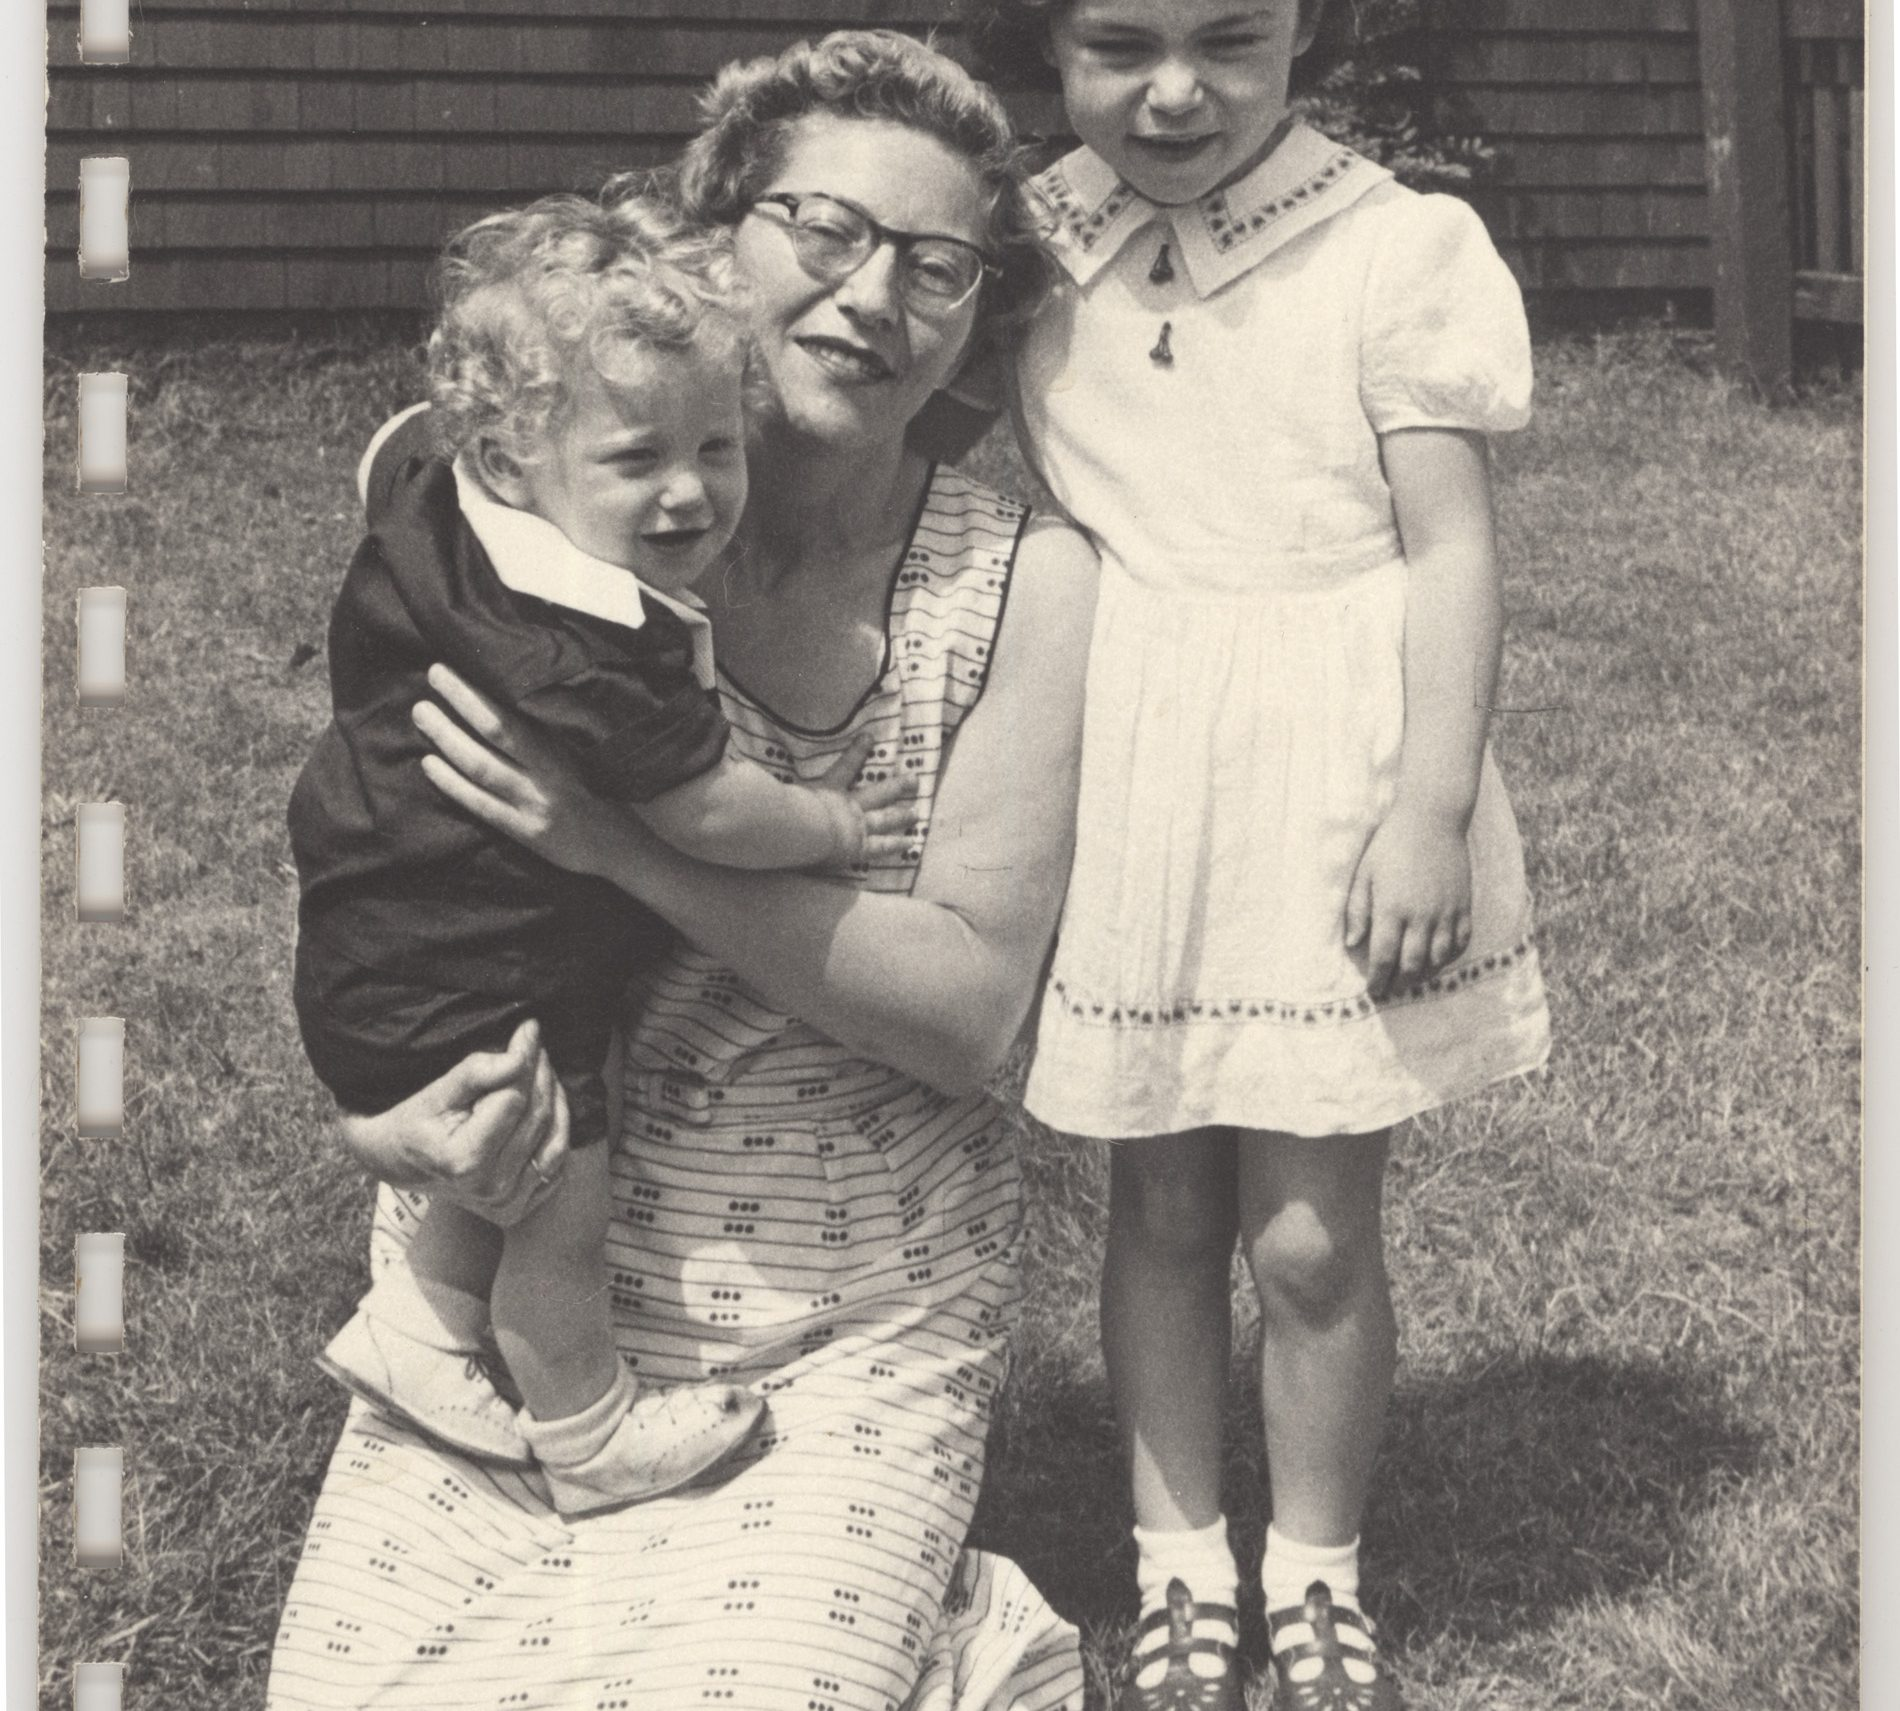 Martha, her daughter Irene and son Alexander, photographed in 1954 in Canada.